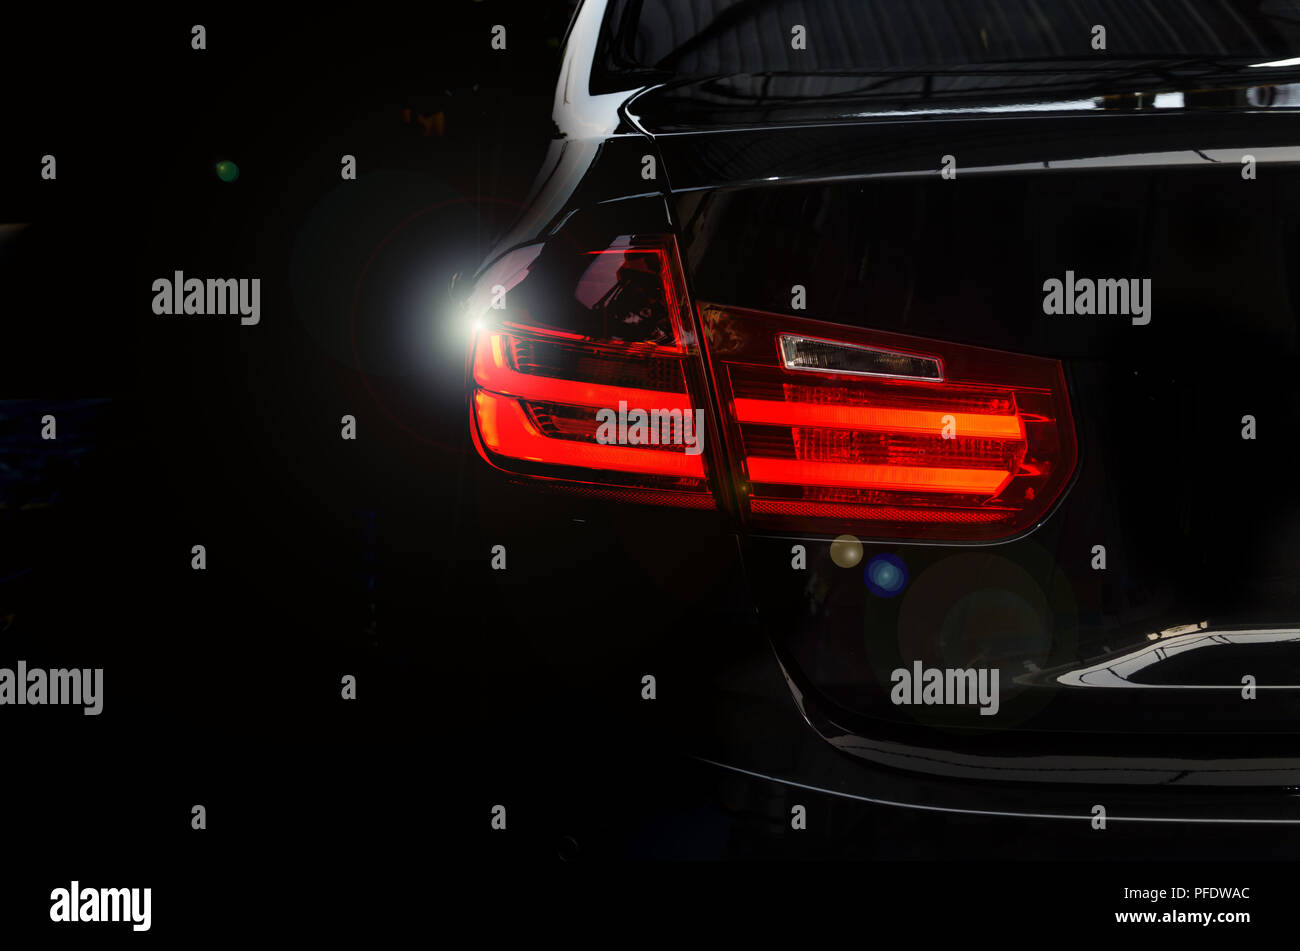 Luxury Car Tail Light On A Black Background Stock Photo 216049524